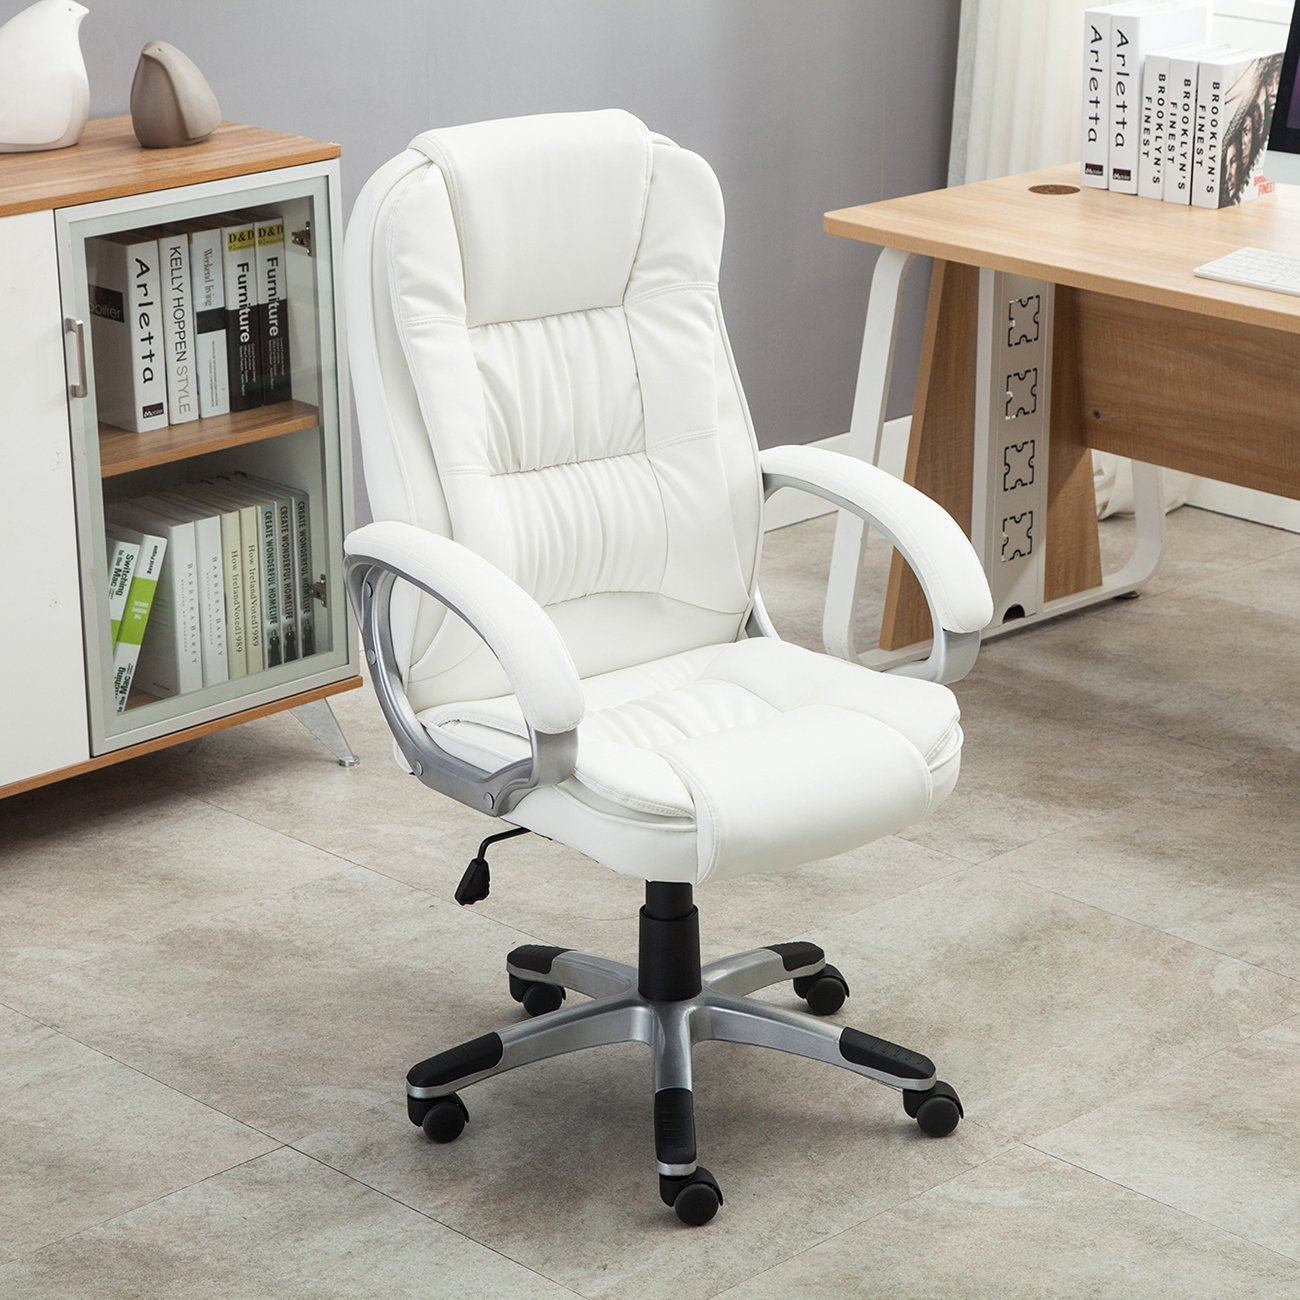 office chair white leather. Amazon.com: Belleze Ergonomic Office PU Leather Chair Executive Computer Hydraulic, White: Home \u0026 Kitchen White